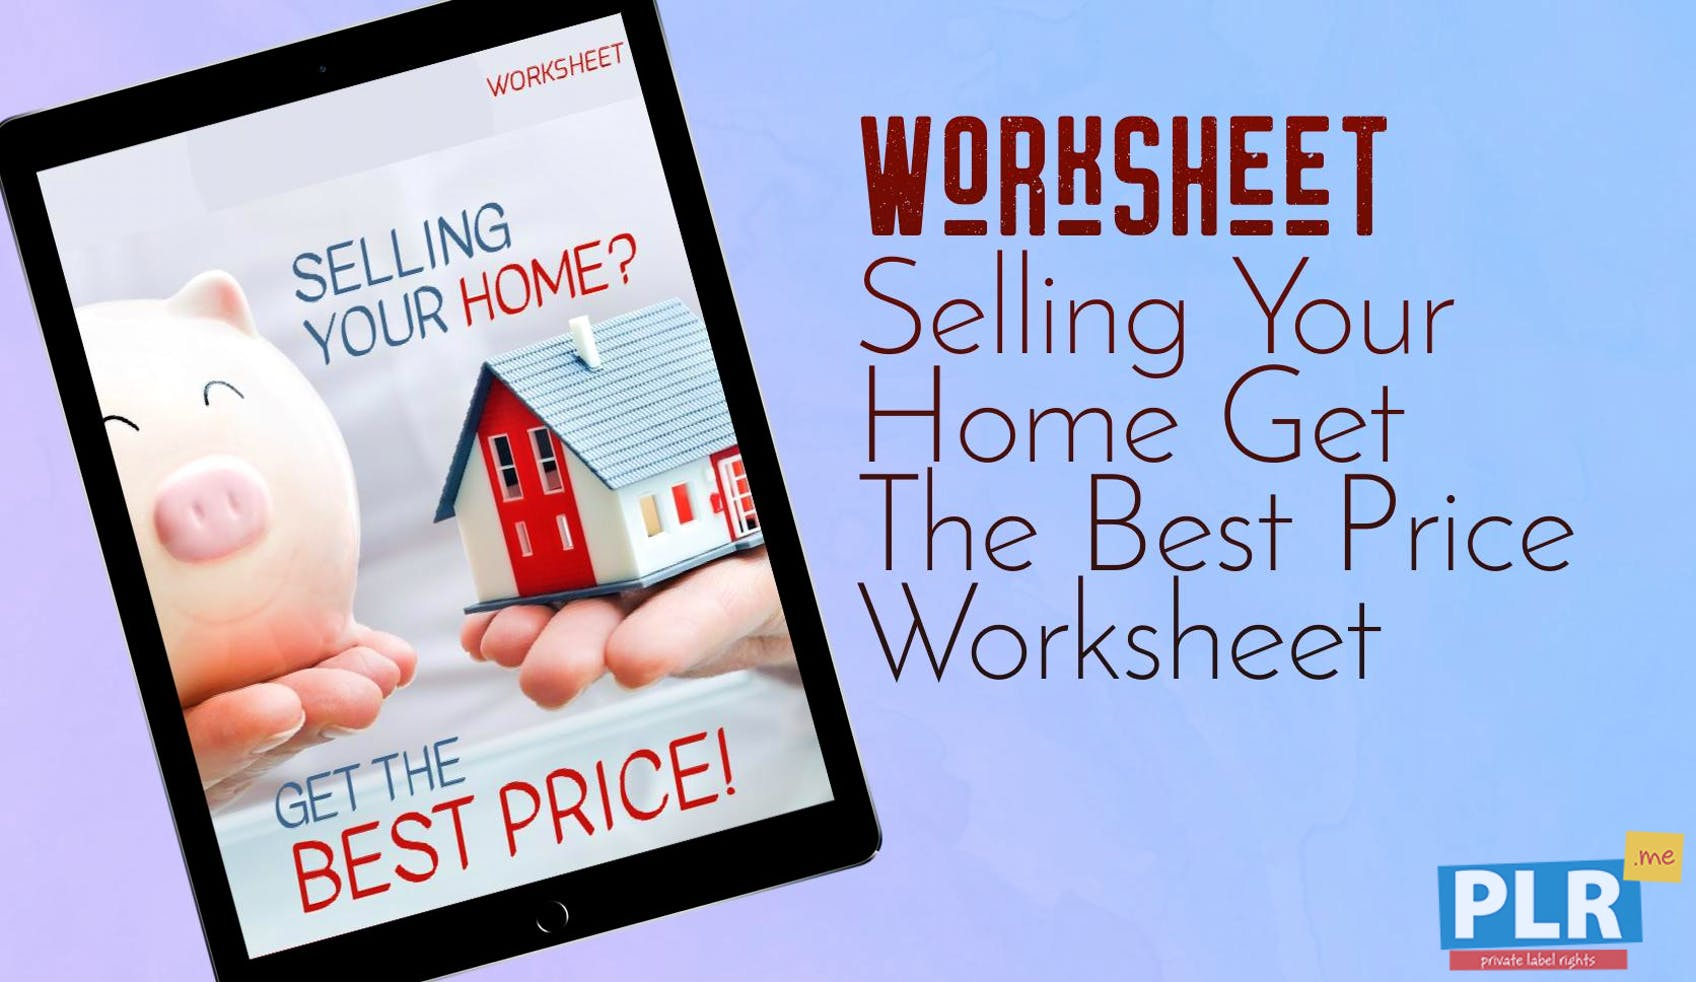 Selling Your Home Get The Best Price Worksheet